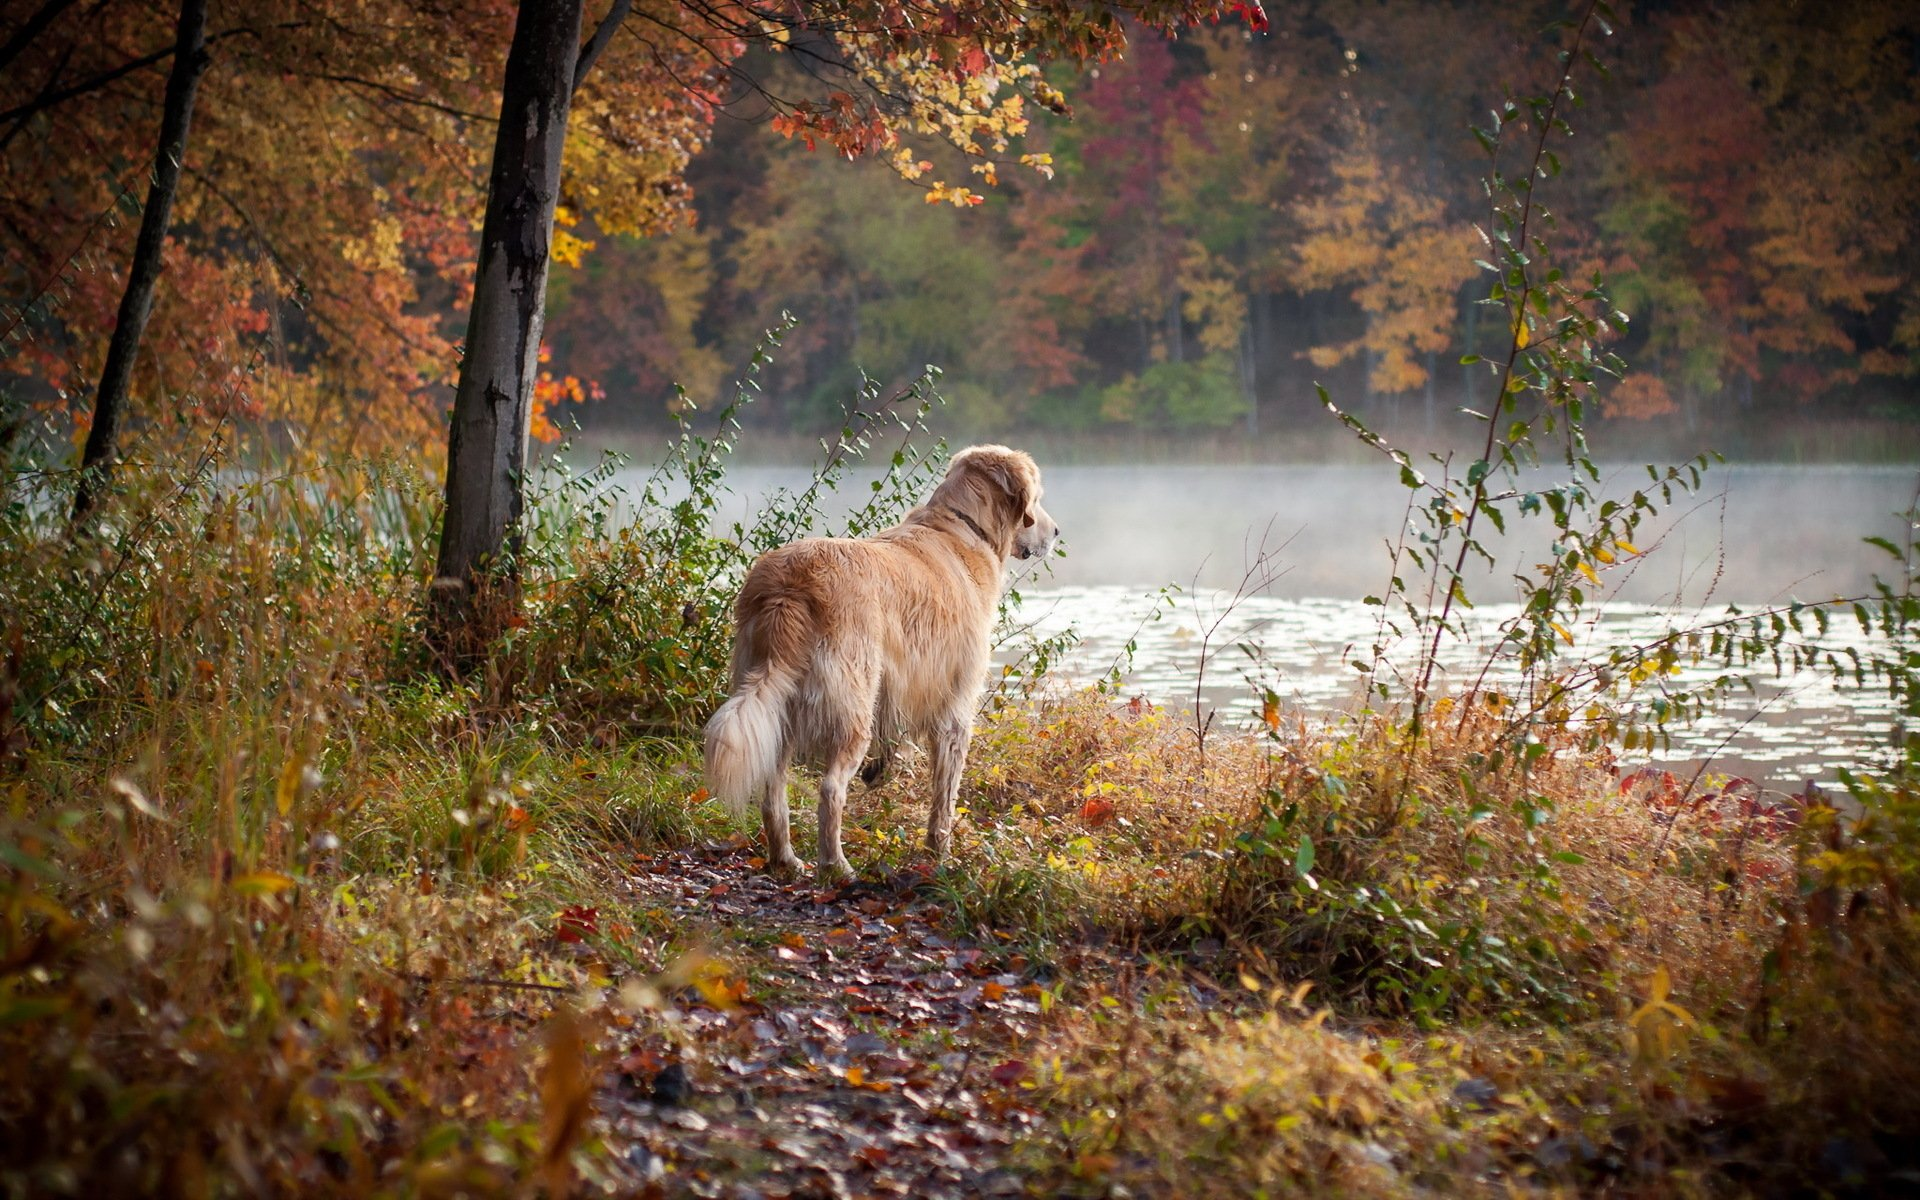 Animal - Golden Retriever  Animal Dog Tree River Wallpaper